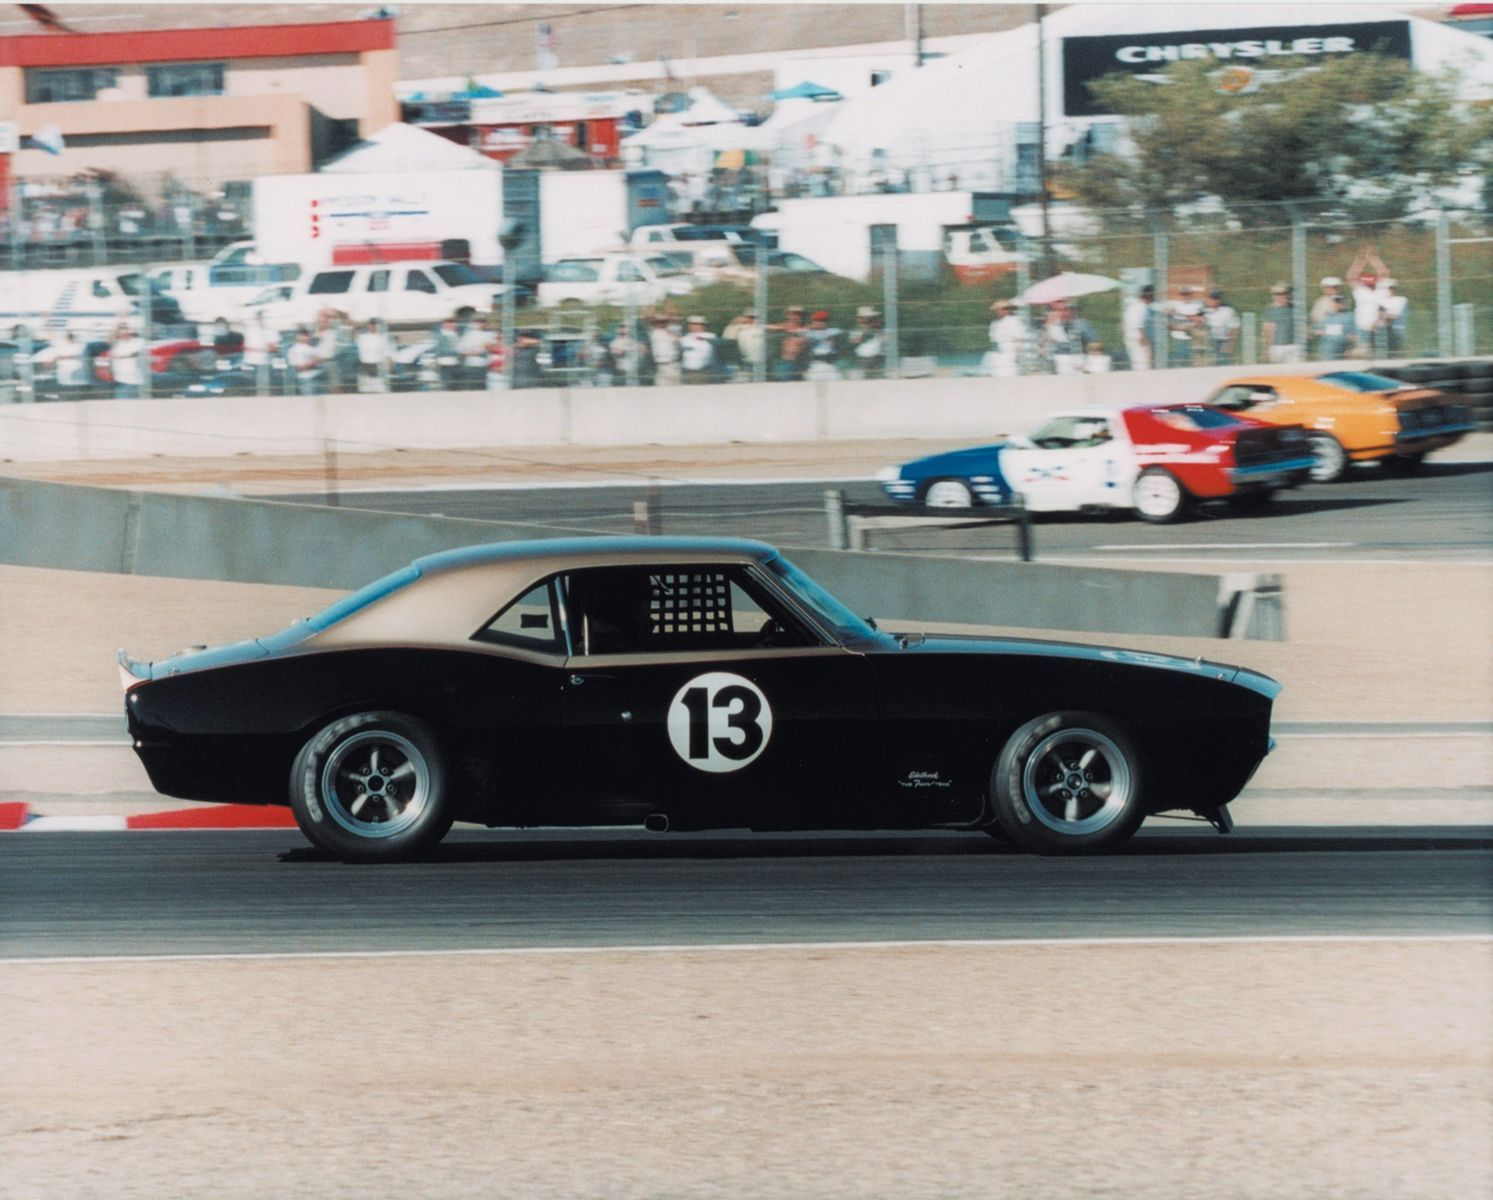 28 Chevrolet Camaro | '68 Smokey Camaro on track